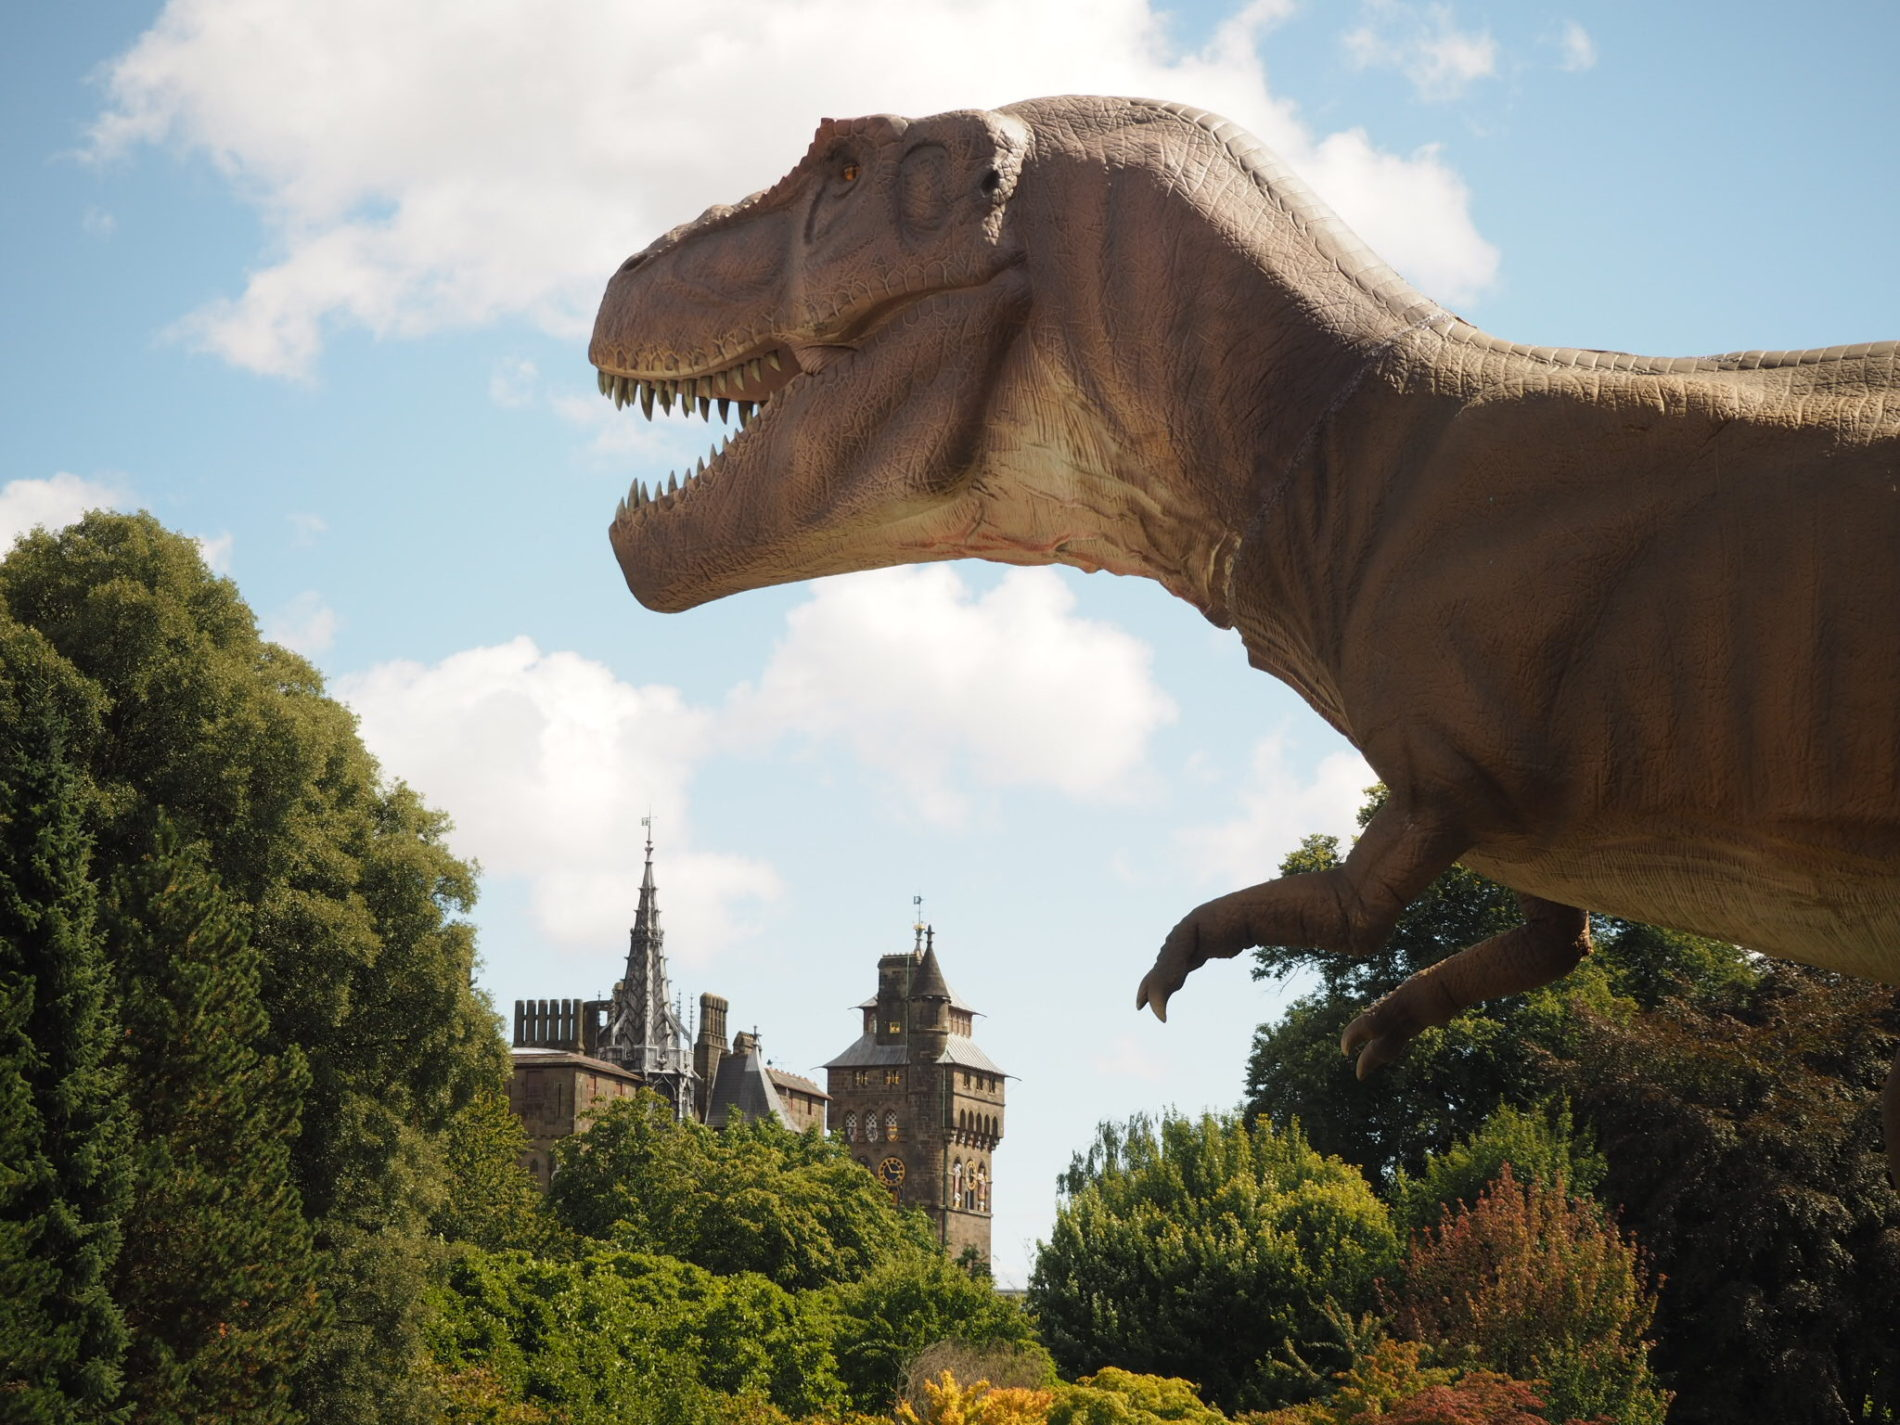 Jurassic Kingdom in Cardiff review: Dinosaurs at Bute Park